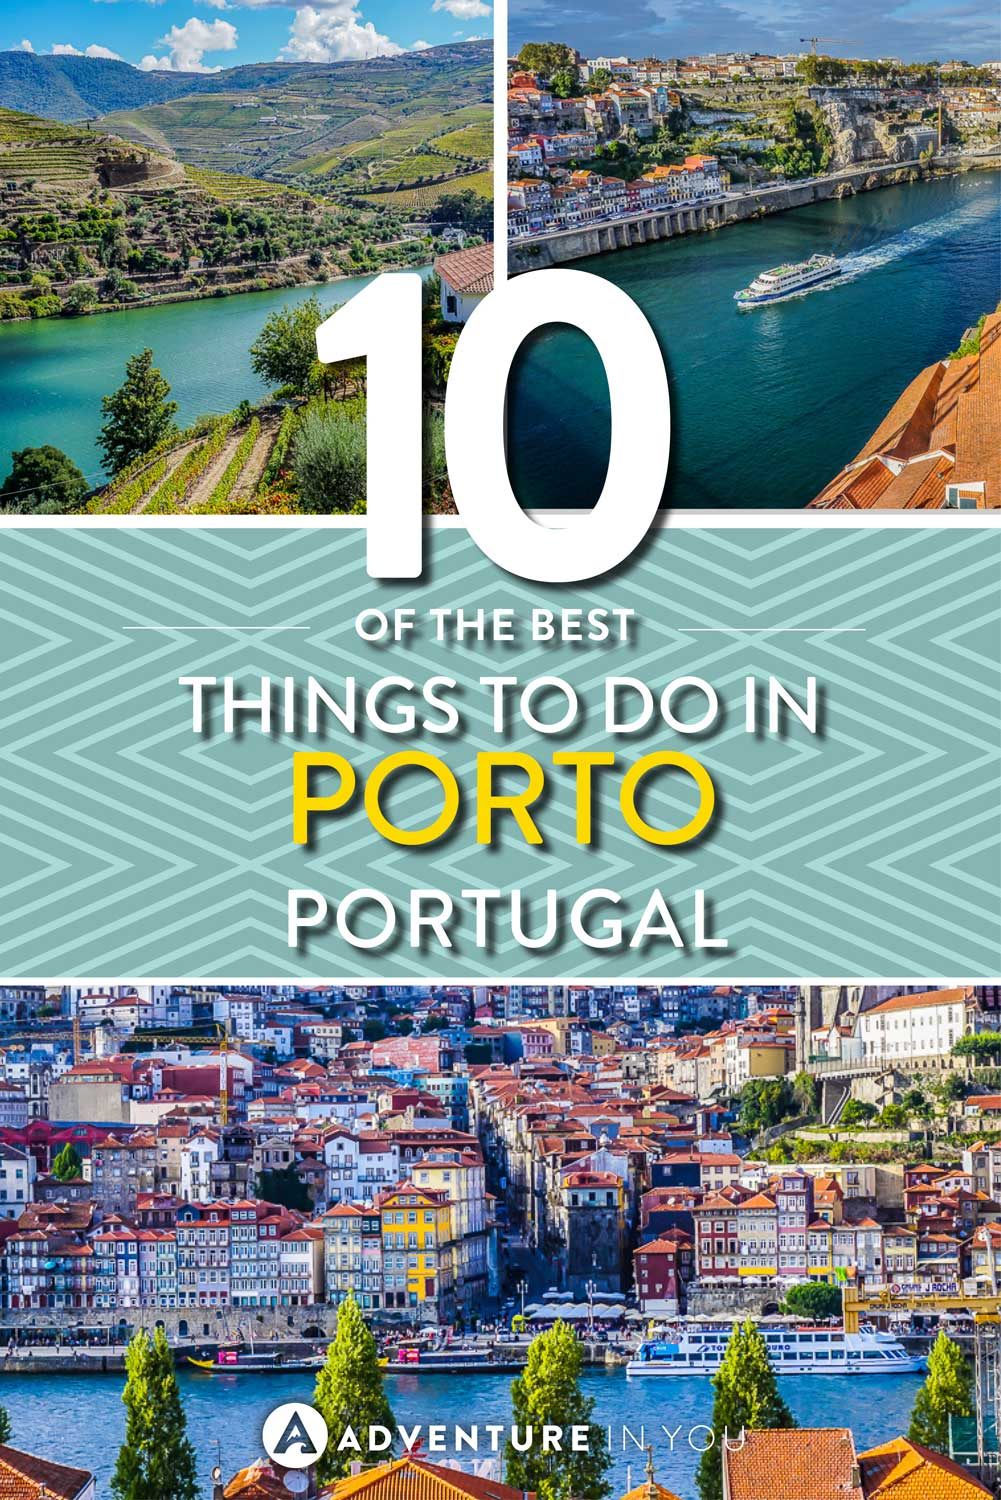 Porto Portugal | Planning a trip to Porto and wondering what to do? Check out our guide on the best things to do in Porto from boat cruises, popular attractions to visiting vineyards.